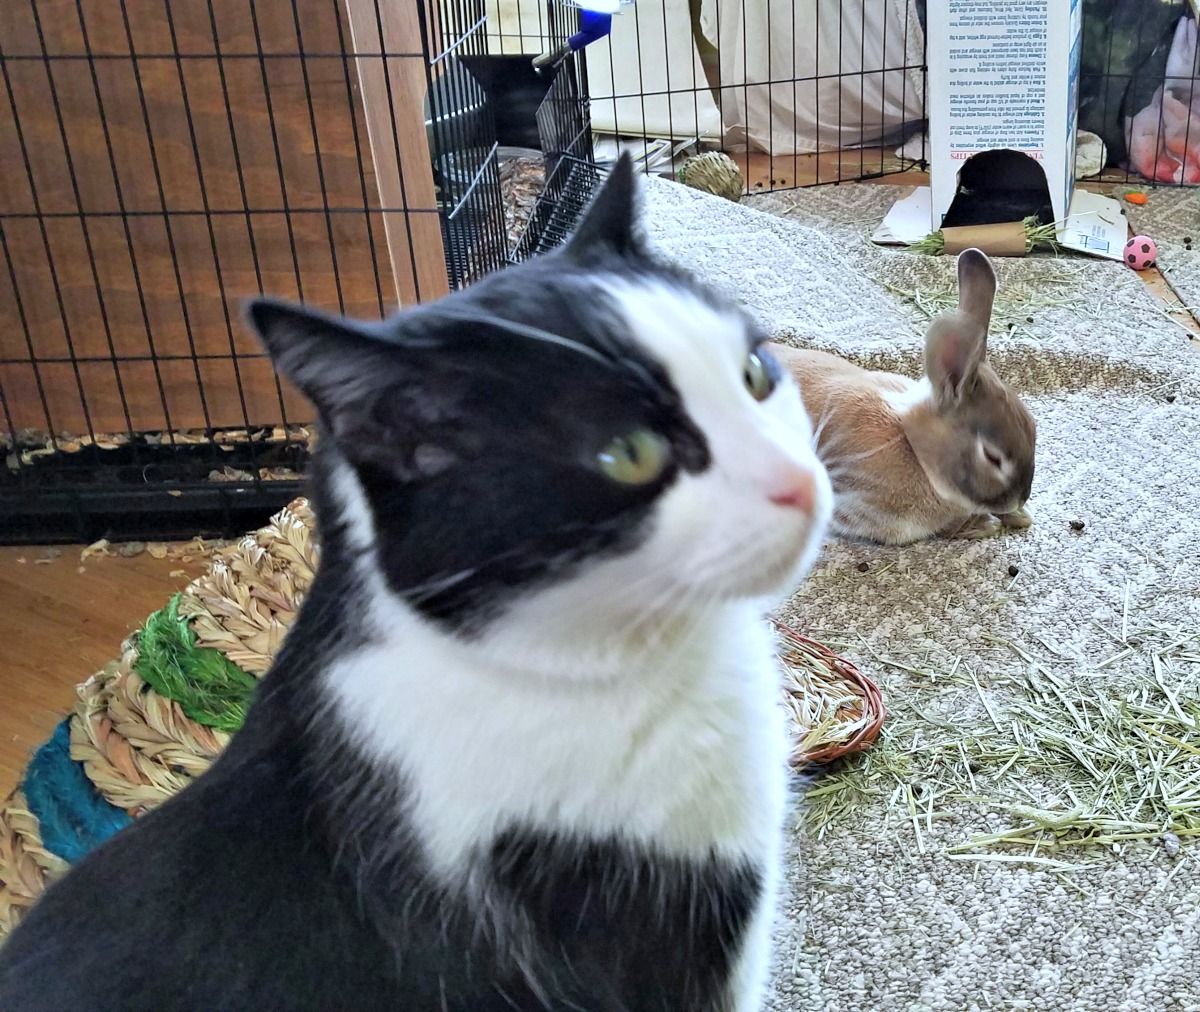 introducing a rescue rabbit to cats, rescue rabbit, cats